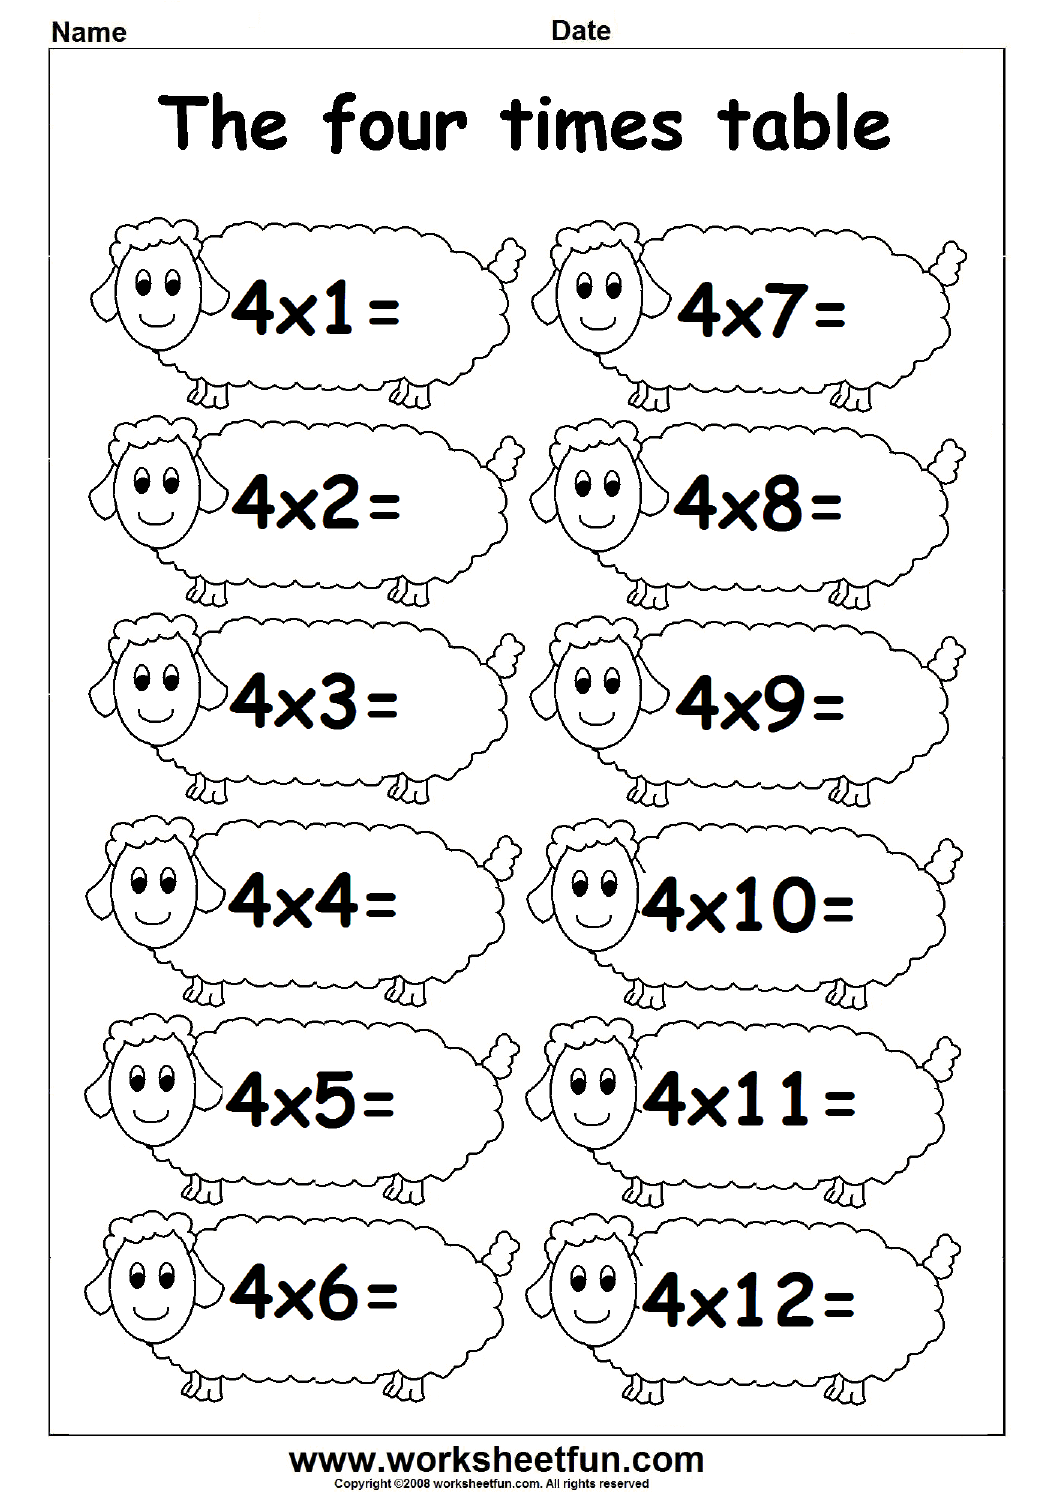 Worksheets Free Times Table Worksheets fun times table worksheets 2 3 4 printable 19 and 20 twenty four free worksheets